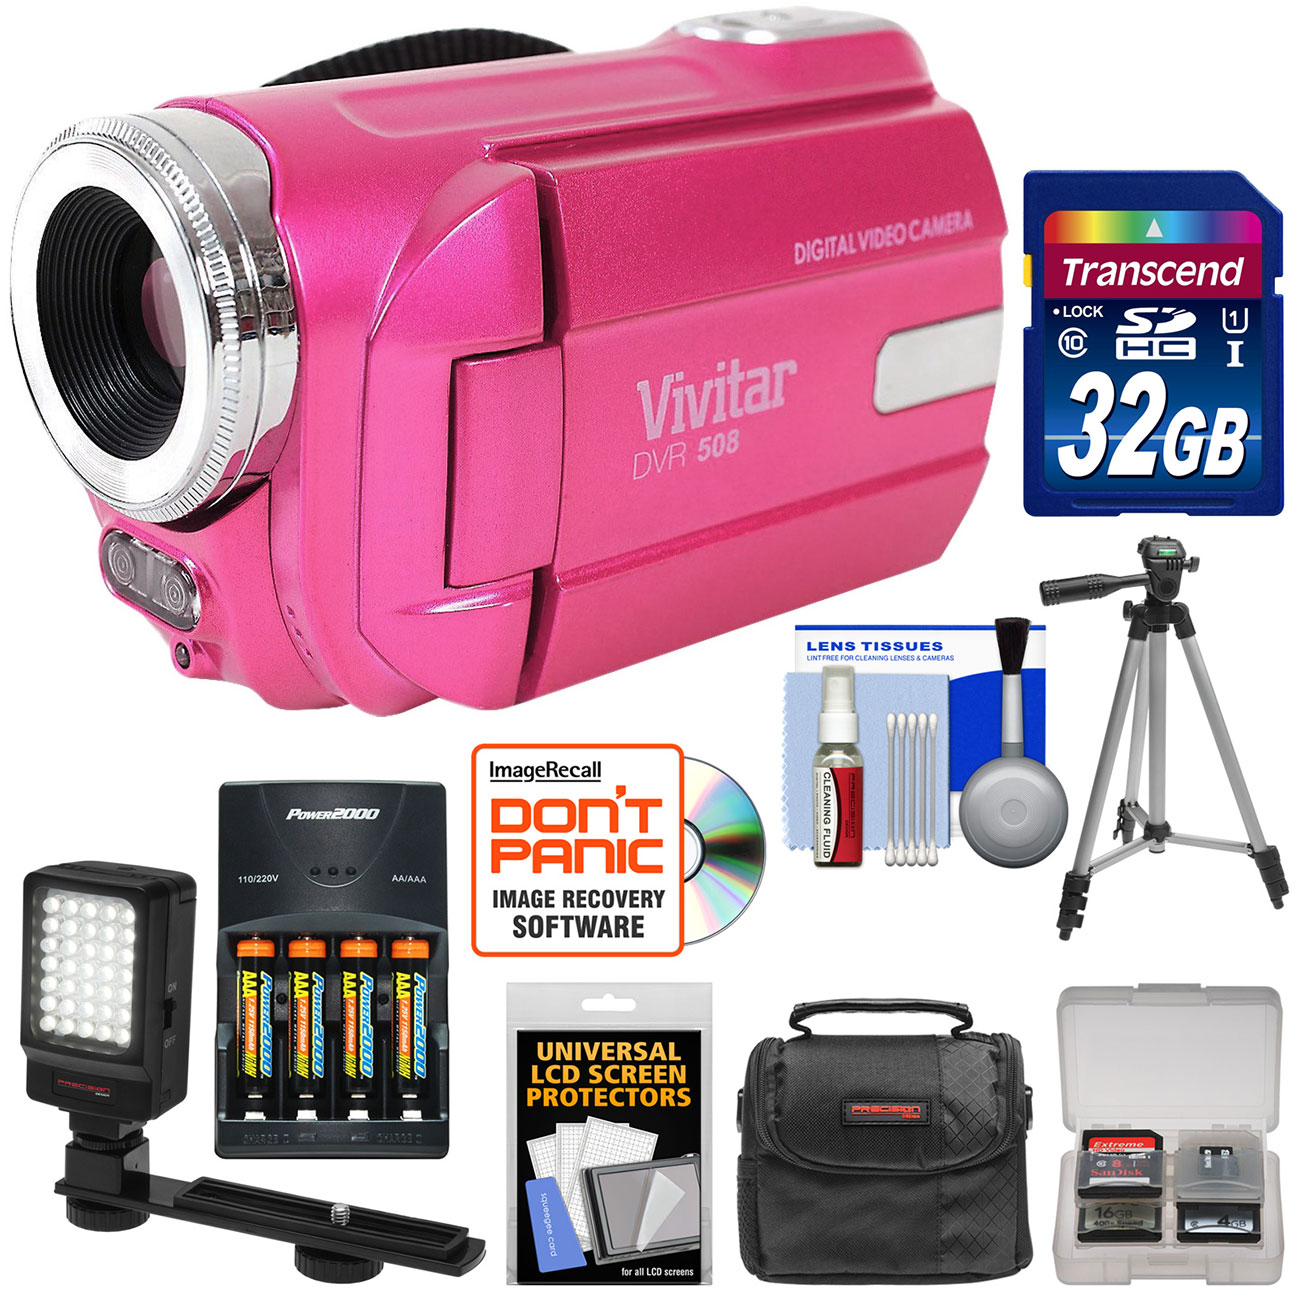 Vivitar DVR-508 HD Digital Video Camera Camcorder (Pink) with 32GB Card + Batteries & Charger + Case + LED Video Light + Tripod + Kit